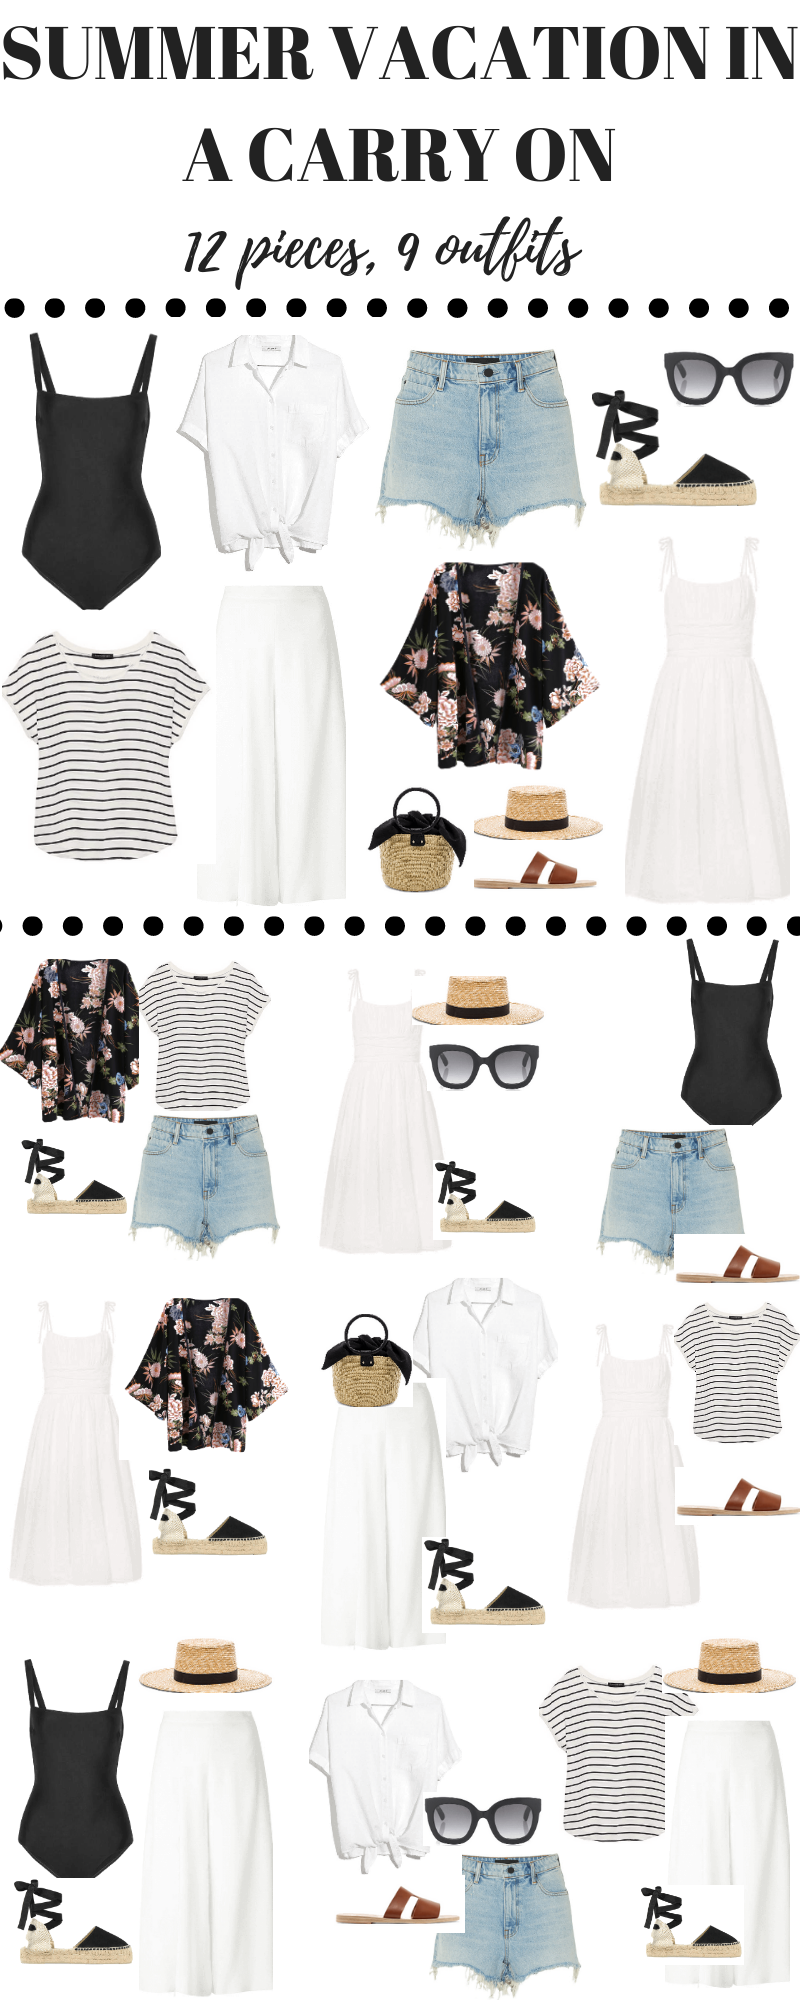 Here are cute summer outfits ideas to show you how you can pack your